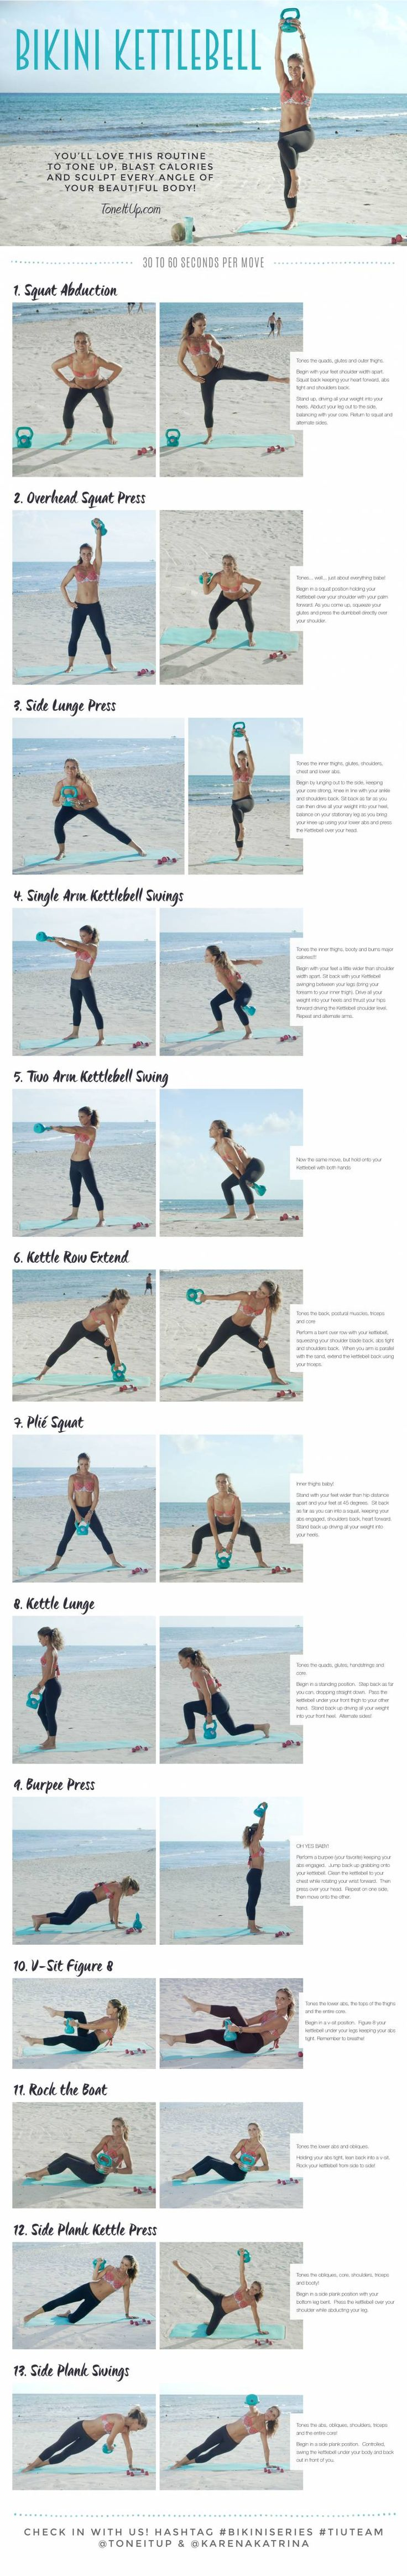 NEW Workout ~ BIKINI KETTLEBELL!                                                                                                                                                     More                                                                                                                                                                                 Más